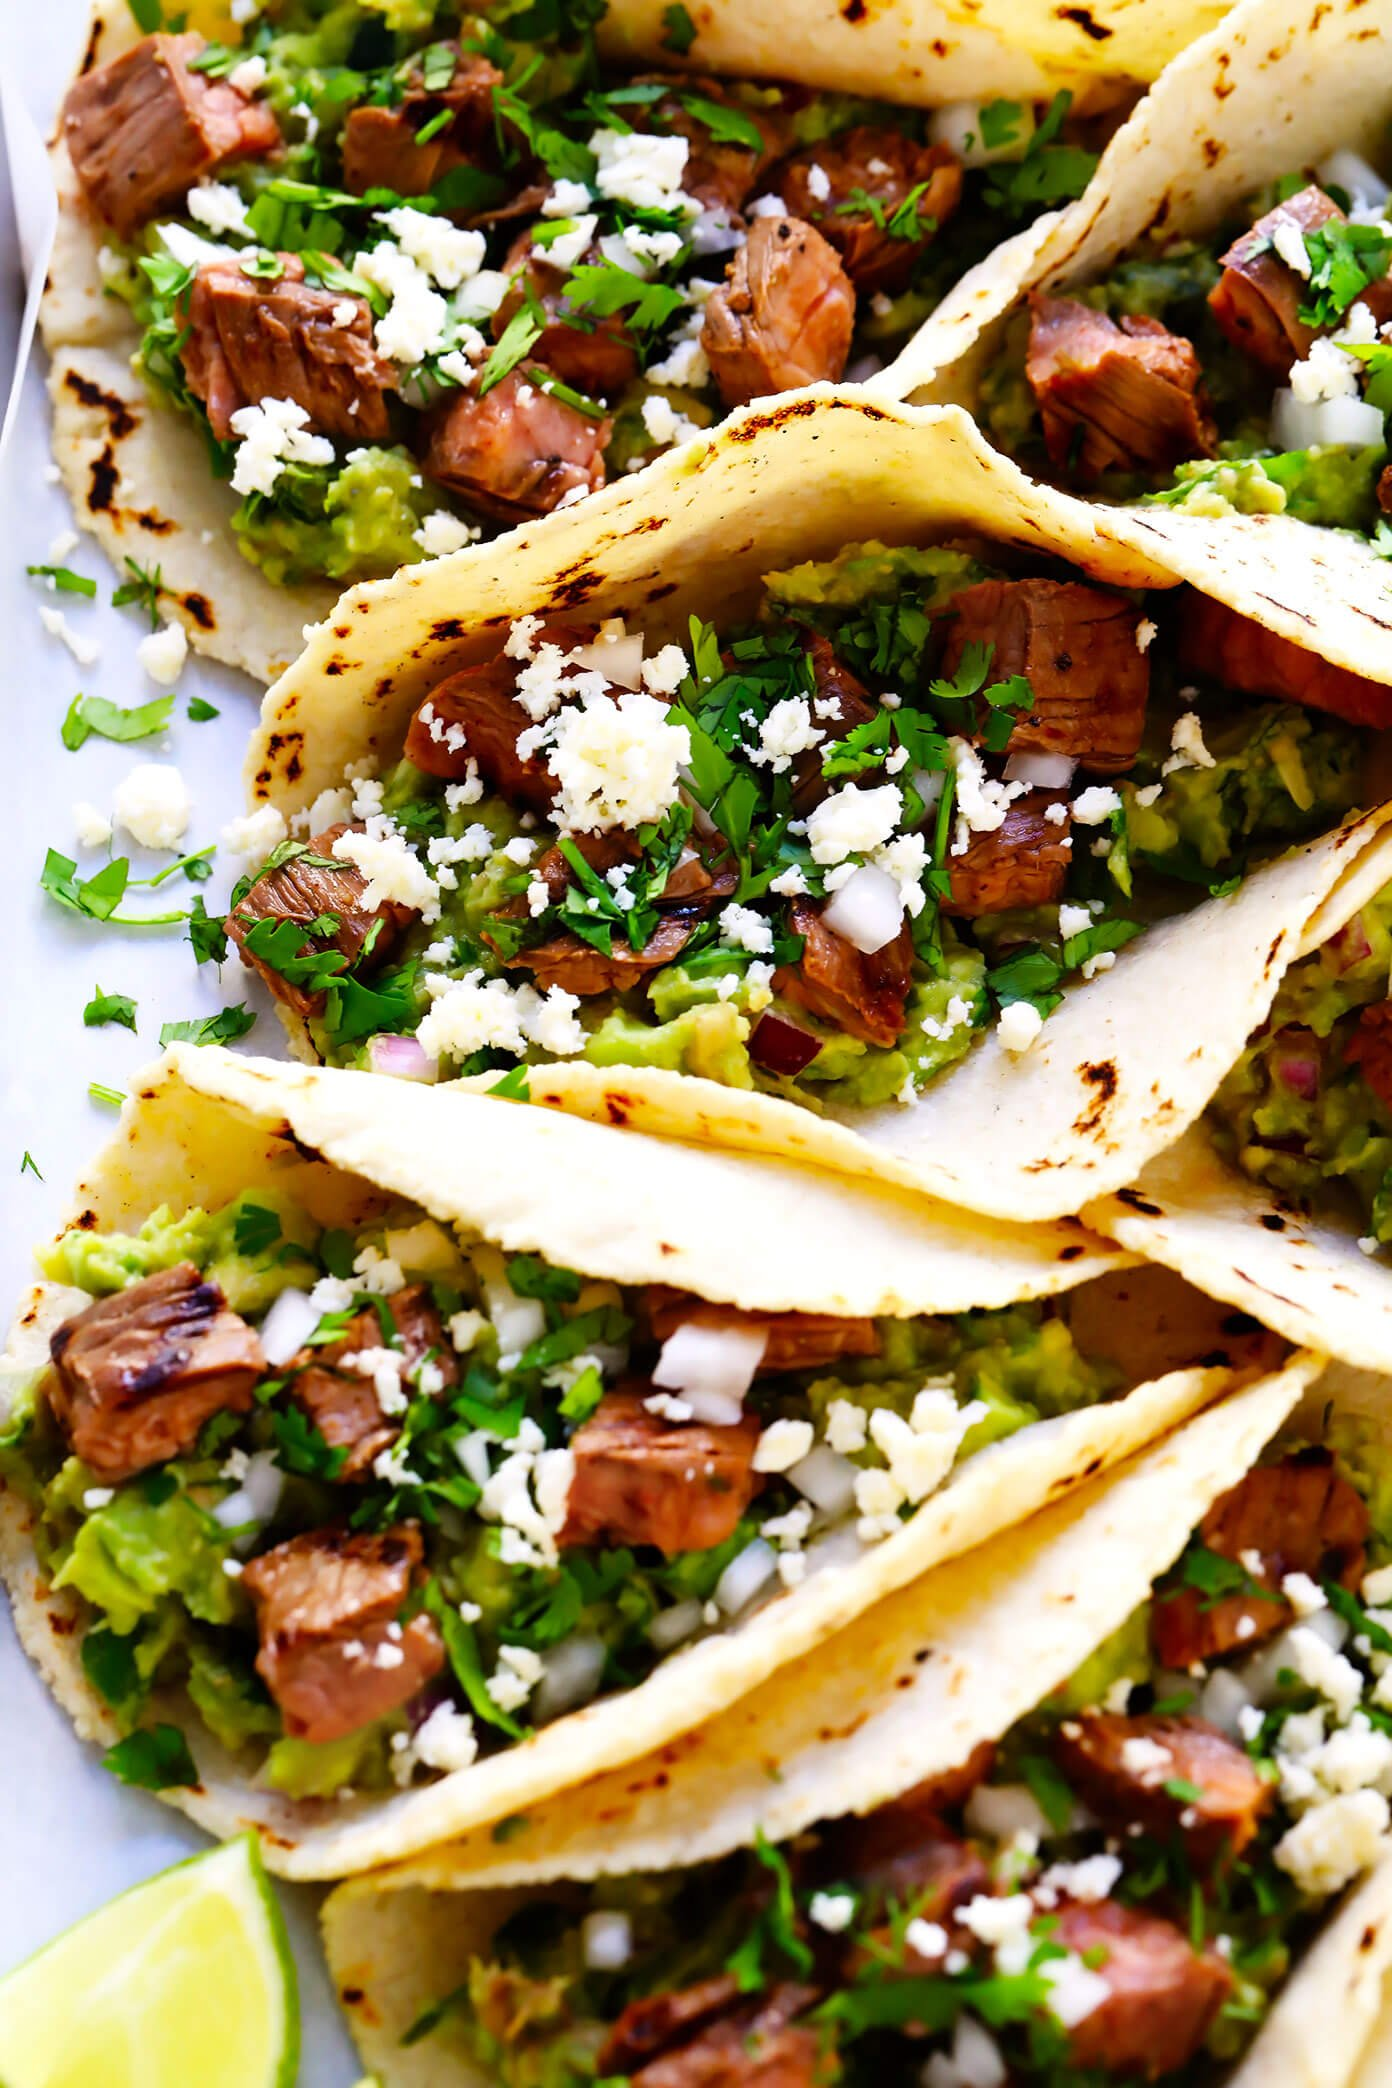 Carne Asada (Grilled Steak) Tacos